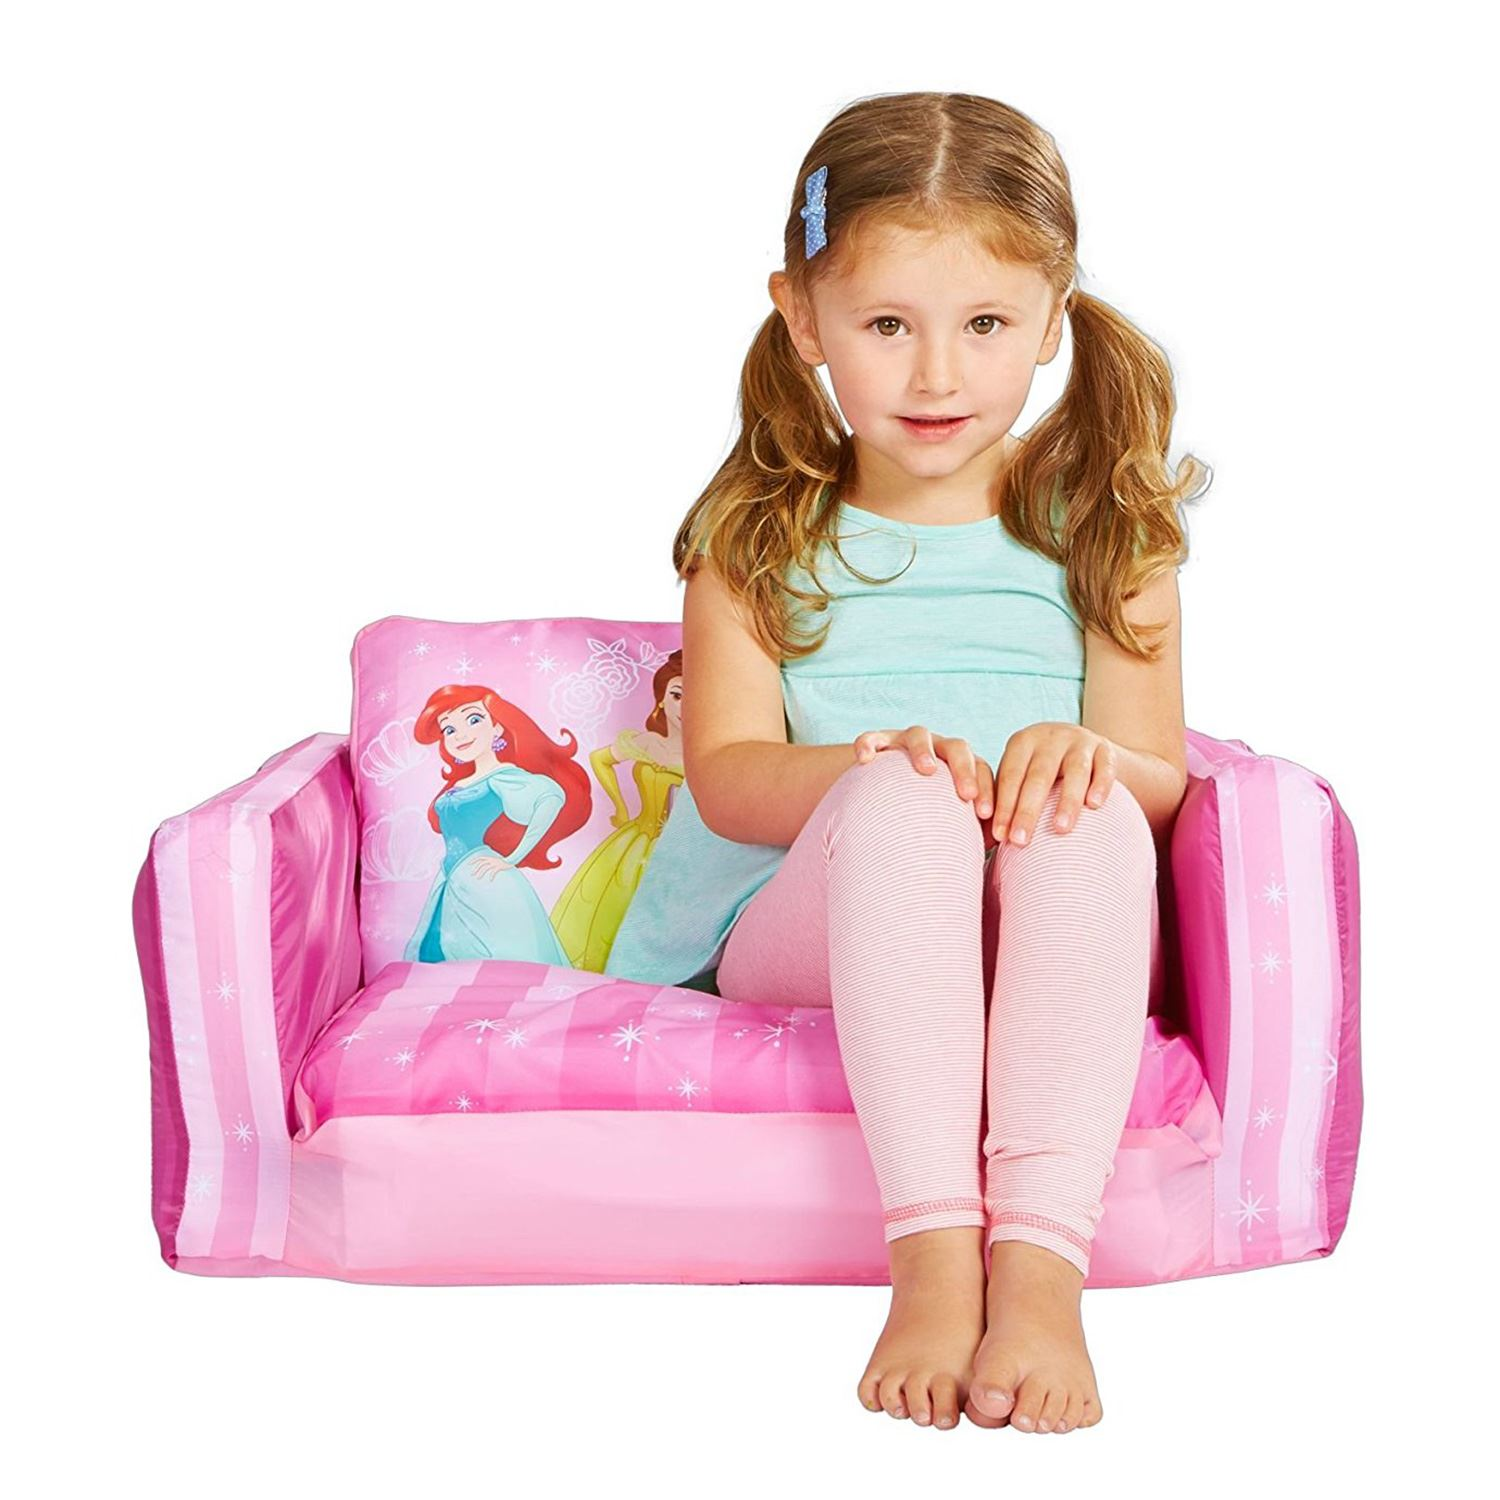 offiziell disney prinzessin sofa zum ausklappen pink neu entwurf belle ariel ebay. Black Bedroom Furniture Sets. Home Design Ideas